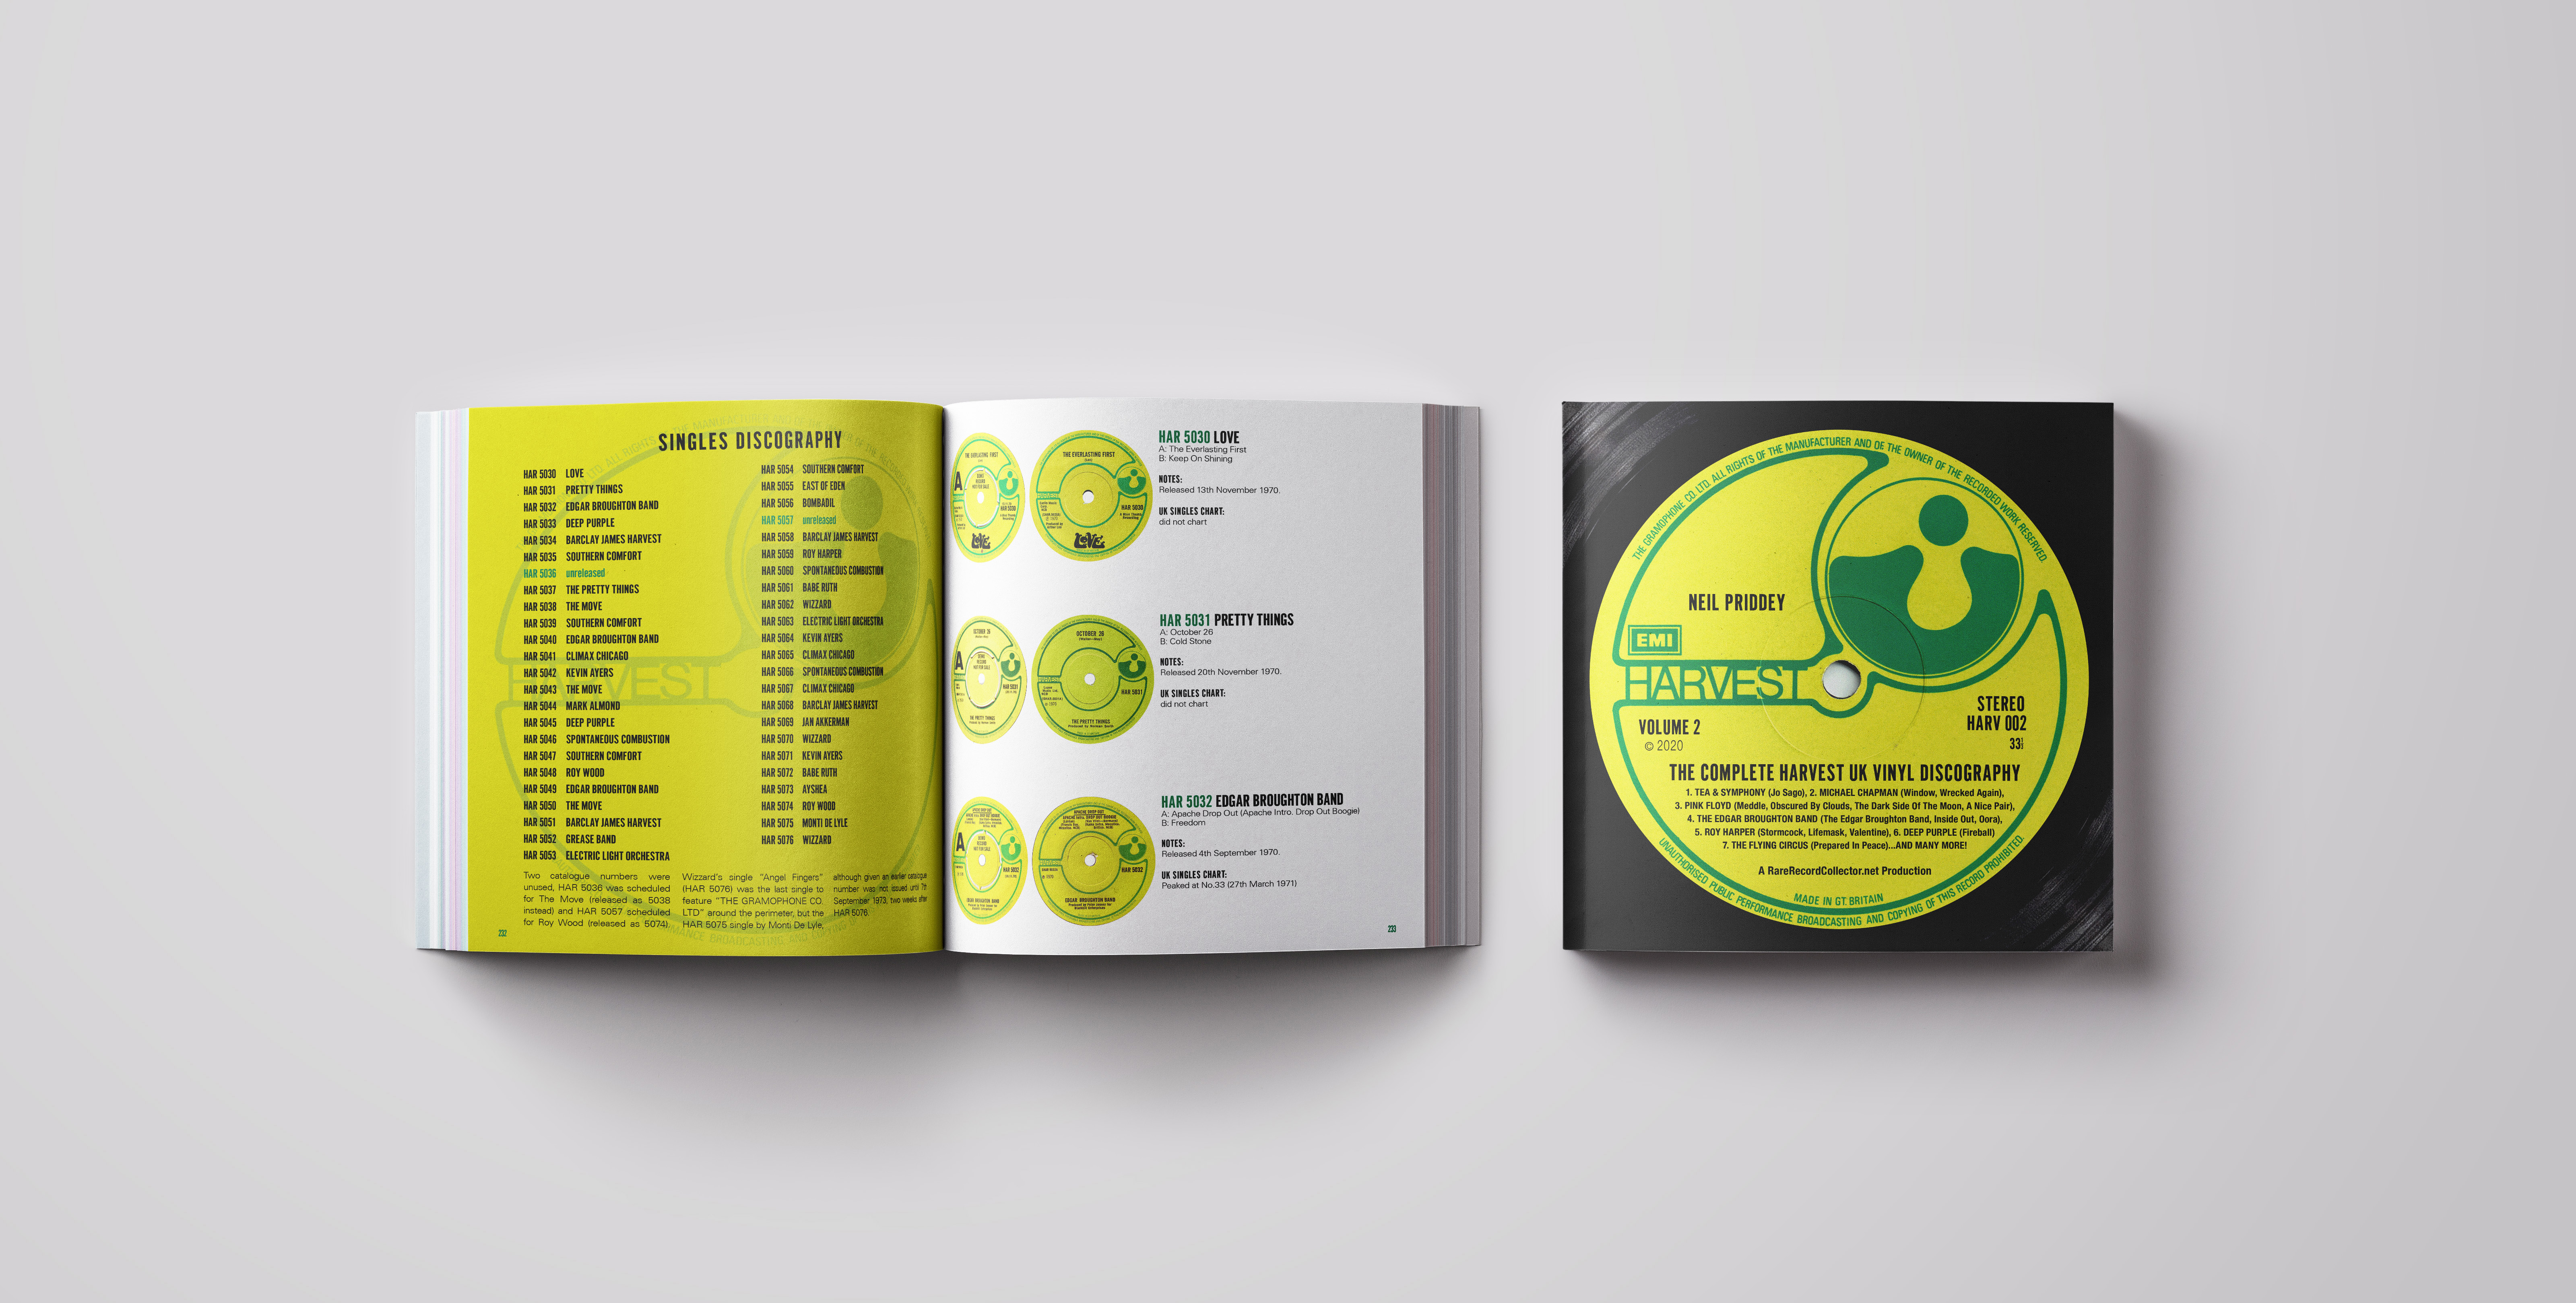 Book cover and spread mockup 232-233